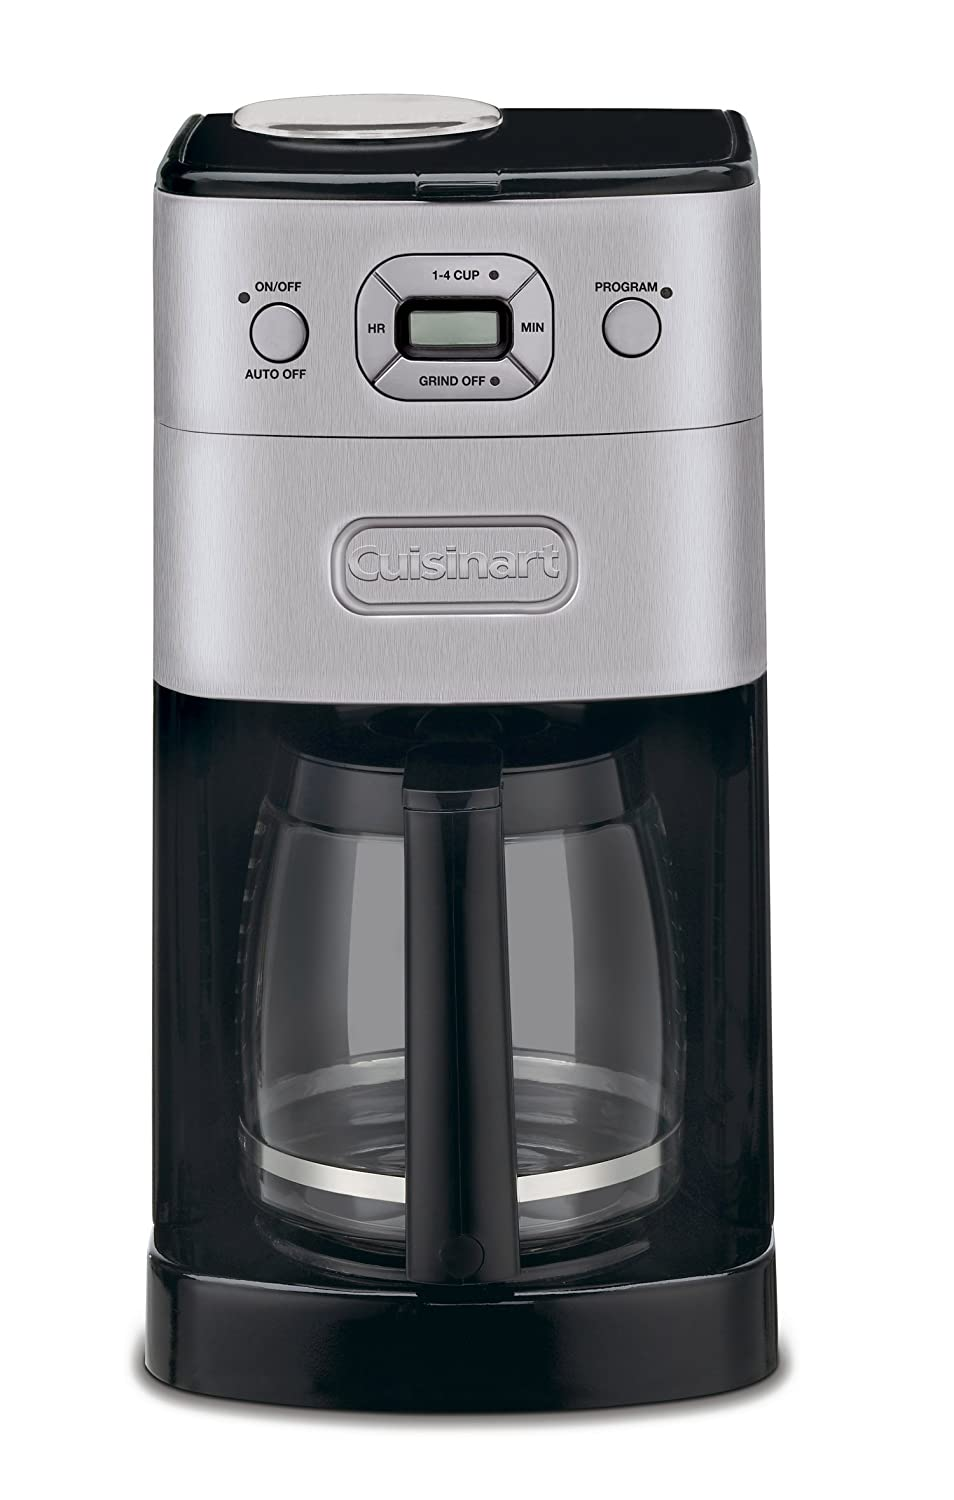 CuisinArt DGB-625BC: The 12 Cup Coffee Maker Meant for Absolute Ease